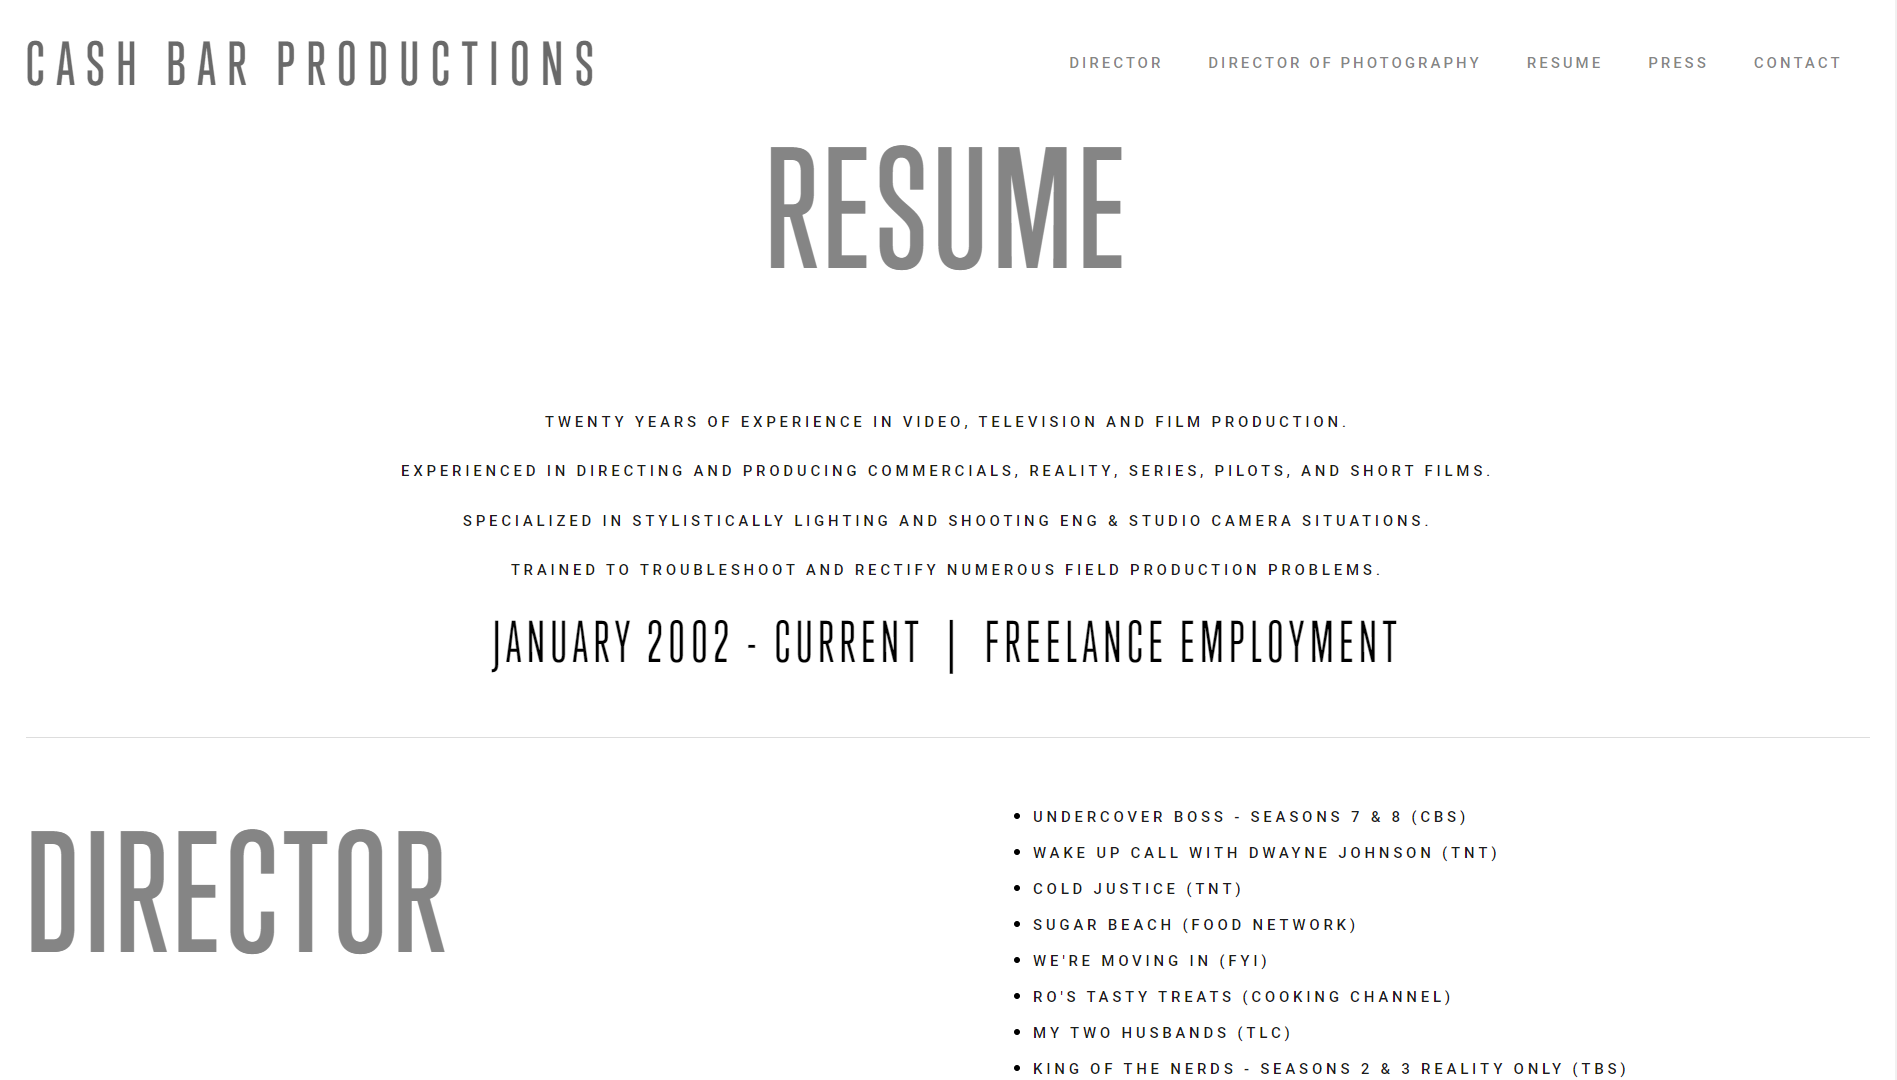 CashBarProductions-Resume Page 1.PNG